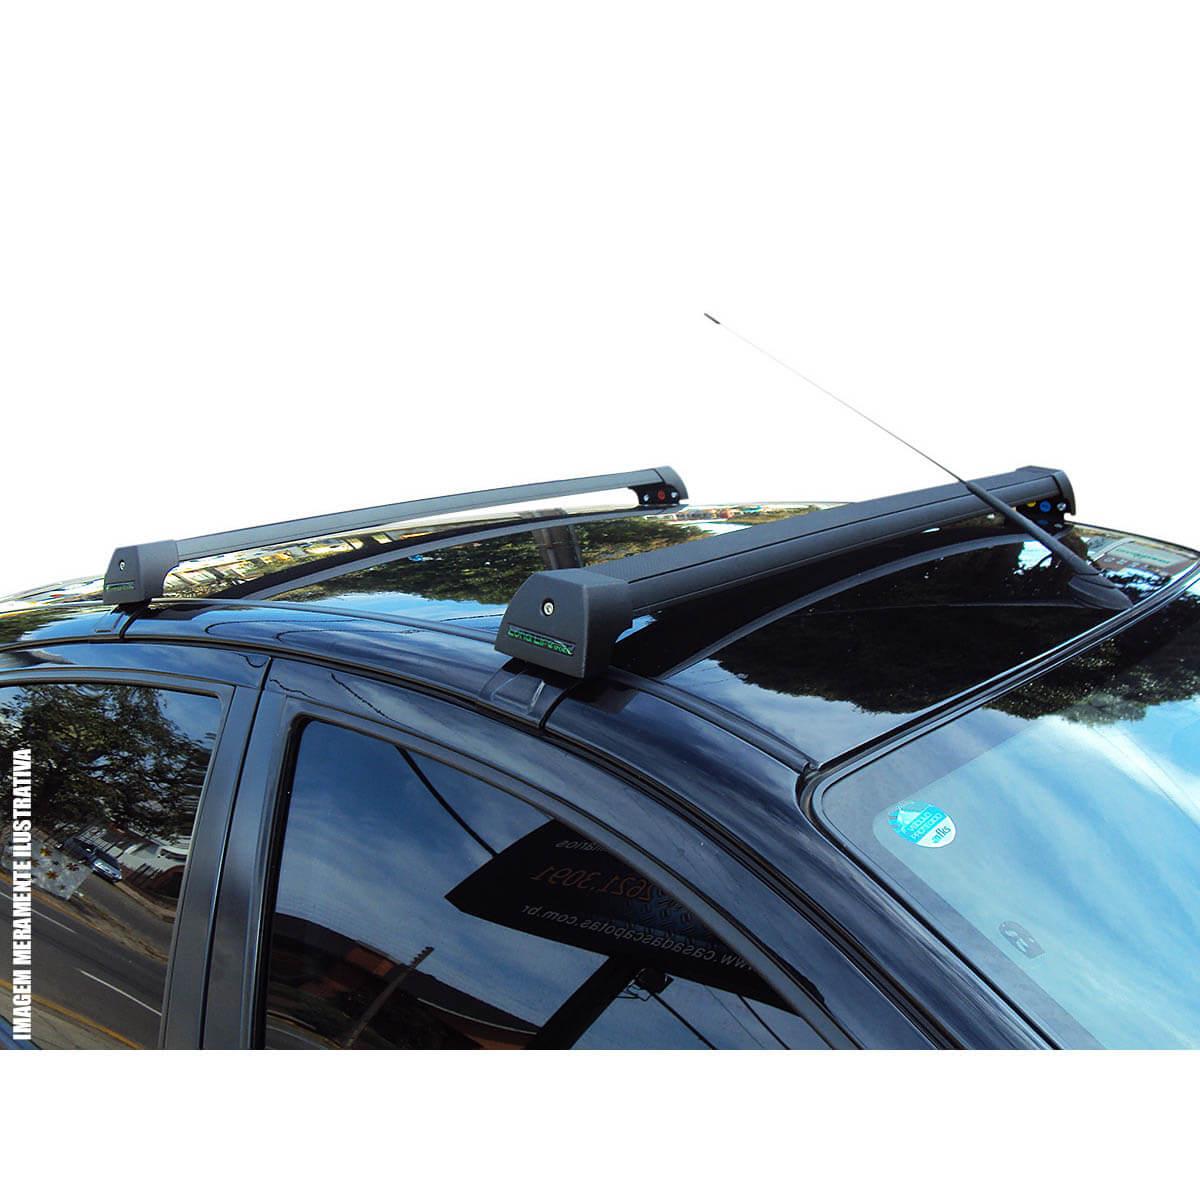 Rack de teto Long Life Sports preto Mercedes Classe A 1999 a 2005